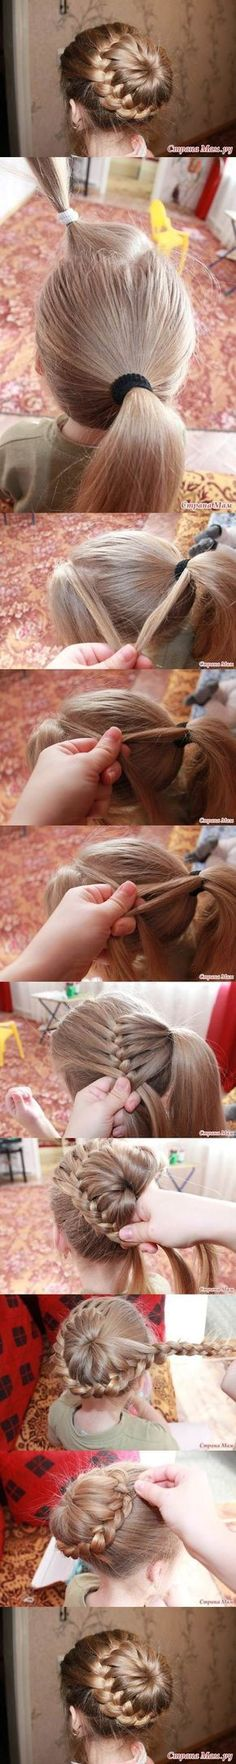 DIY Unique Braided Bun Hairstyle | iCreativeIdeas.com - http://1pic4u.com/2015/09/04/diy-unique-braided-bun-hairstyle-icreativeideas-com/